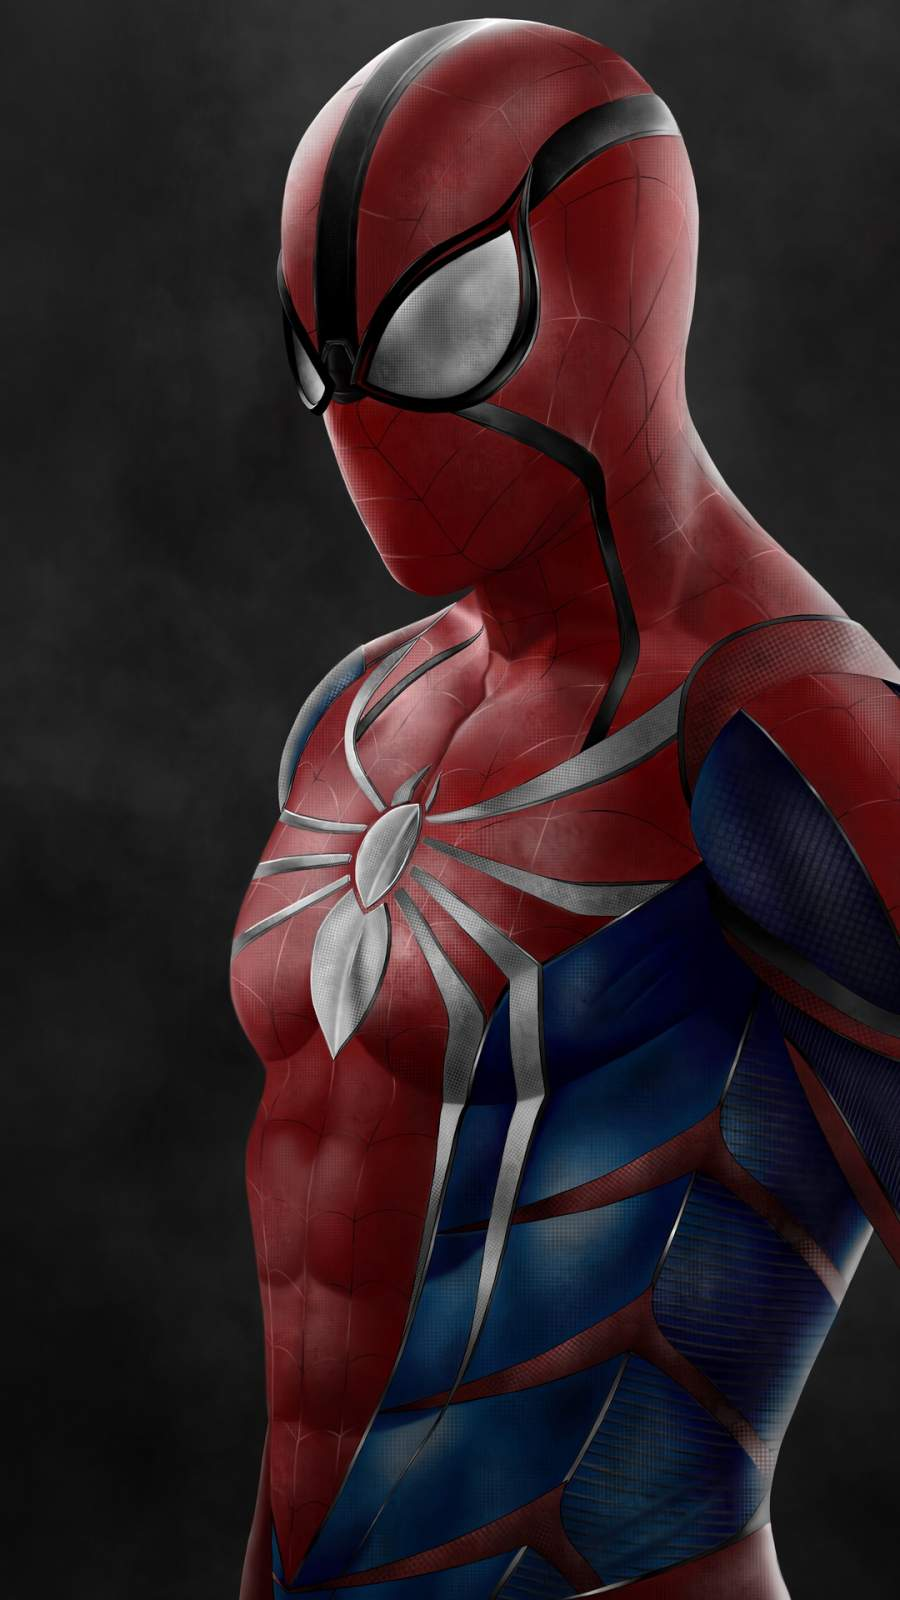 Marvel character spiderman new look